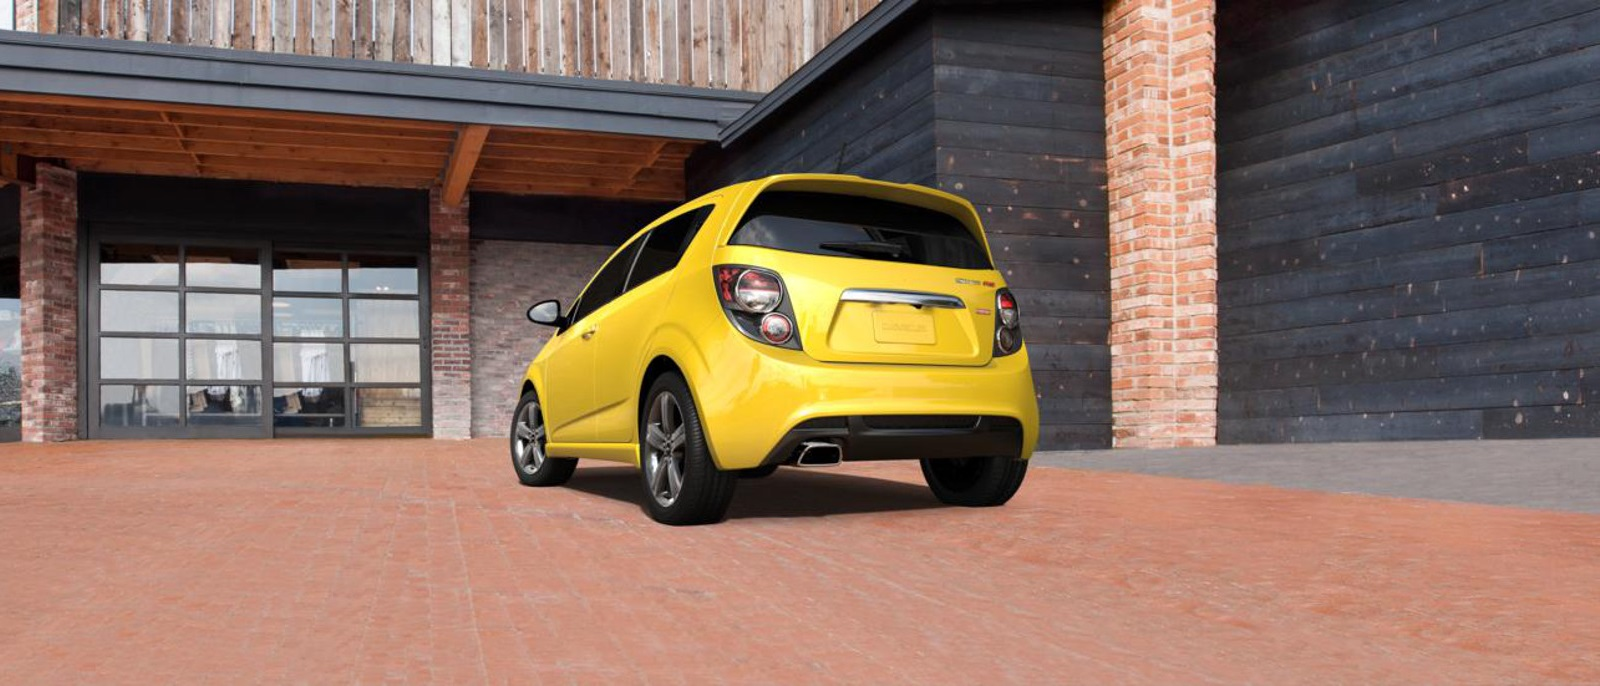 2016 Chevy Sonic Yellow backside exterior view